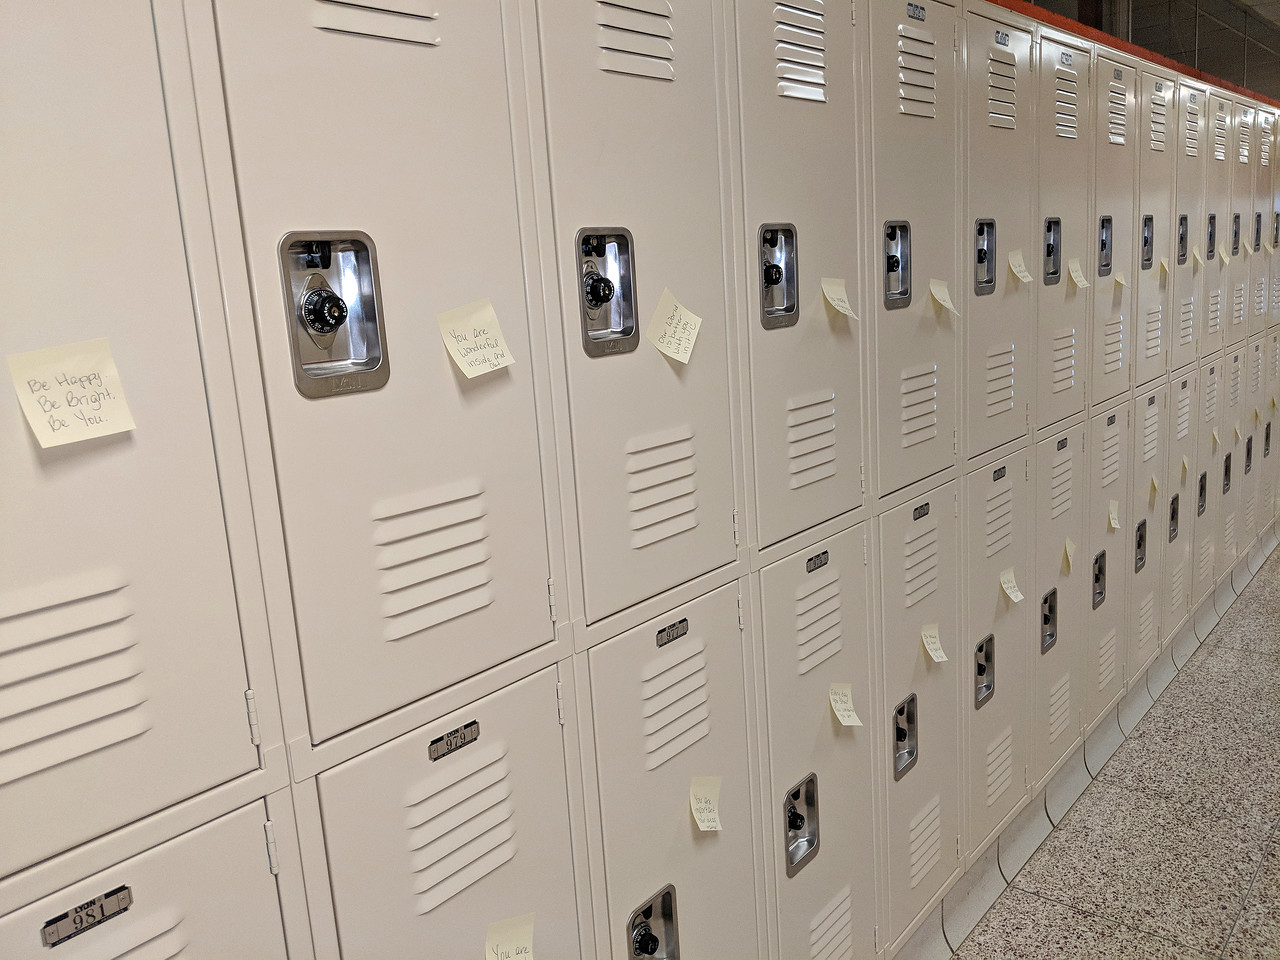 CINDY BREDA / GAZETTE Former Buckeye school board member Kim Cecelich spearheaded Monday's Post-It Note project as a way to let students know they are loved. More than 1,200 hand-written notes with encouraging messages were placed on lockers at the high school to help students feel good about themselves when they return from spring break today.